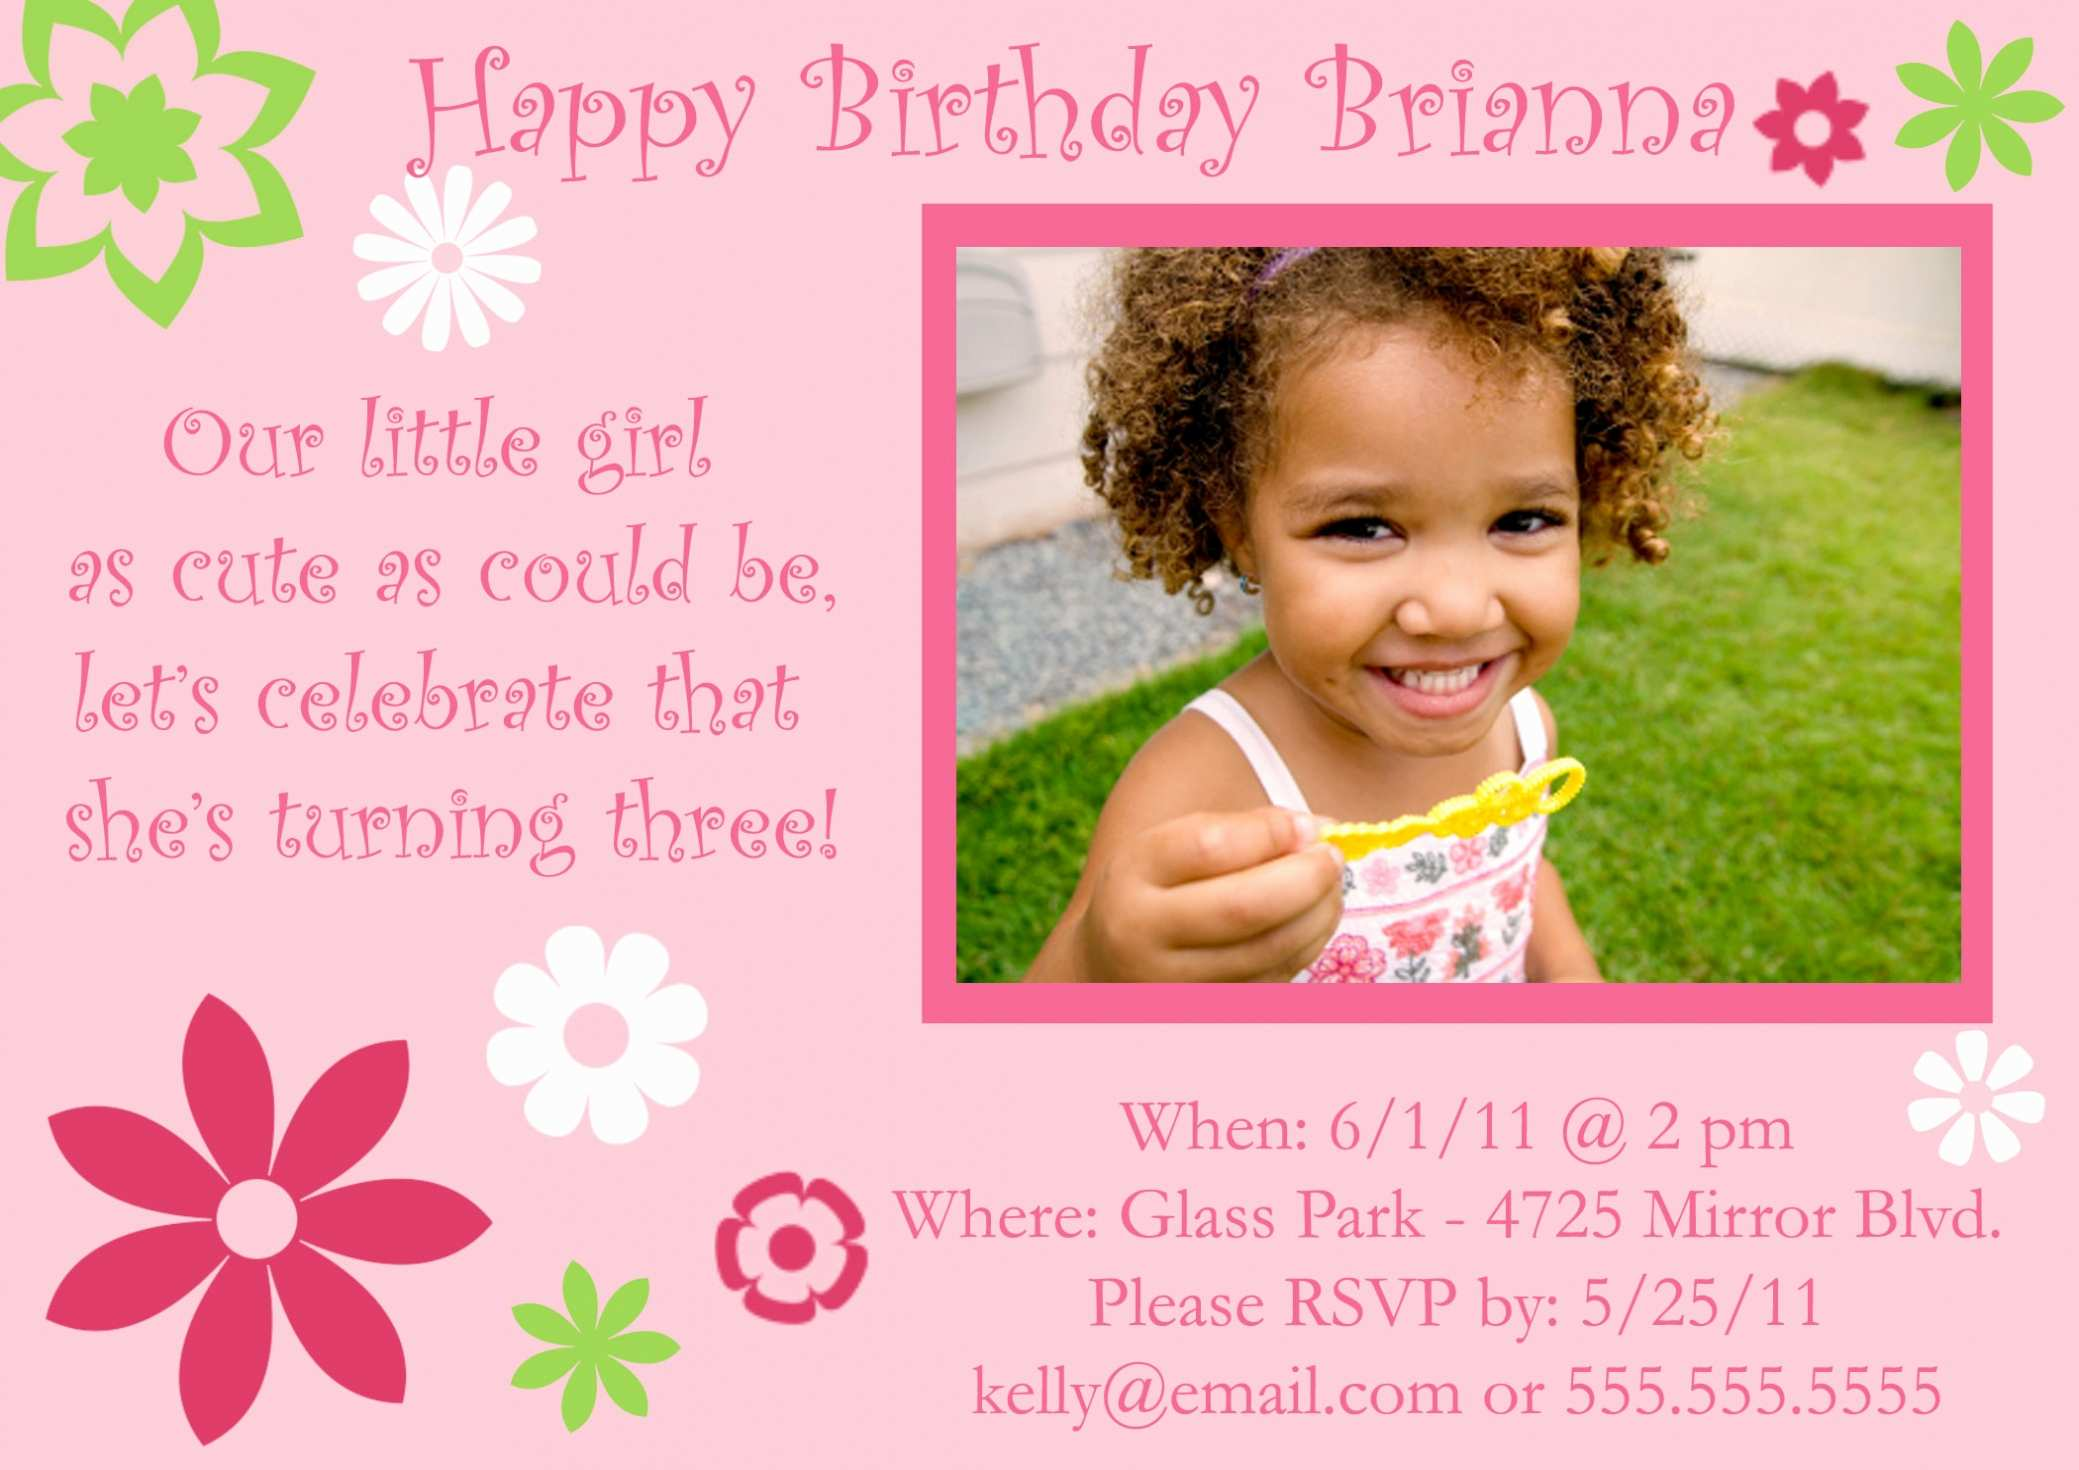 25 Create 5 Year Old Birthday Card Template in Word with 5 Year Old Birthday Card Template